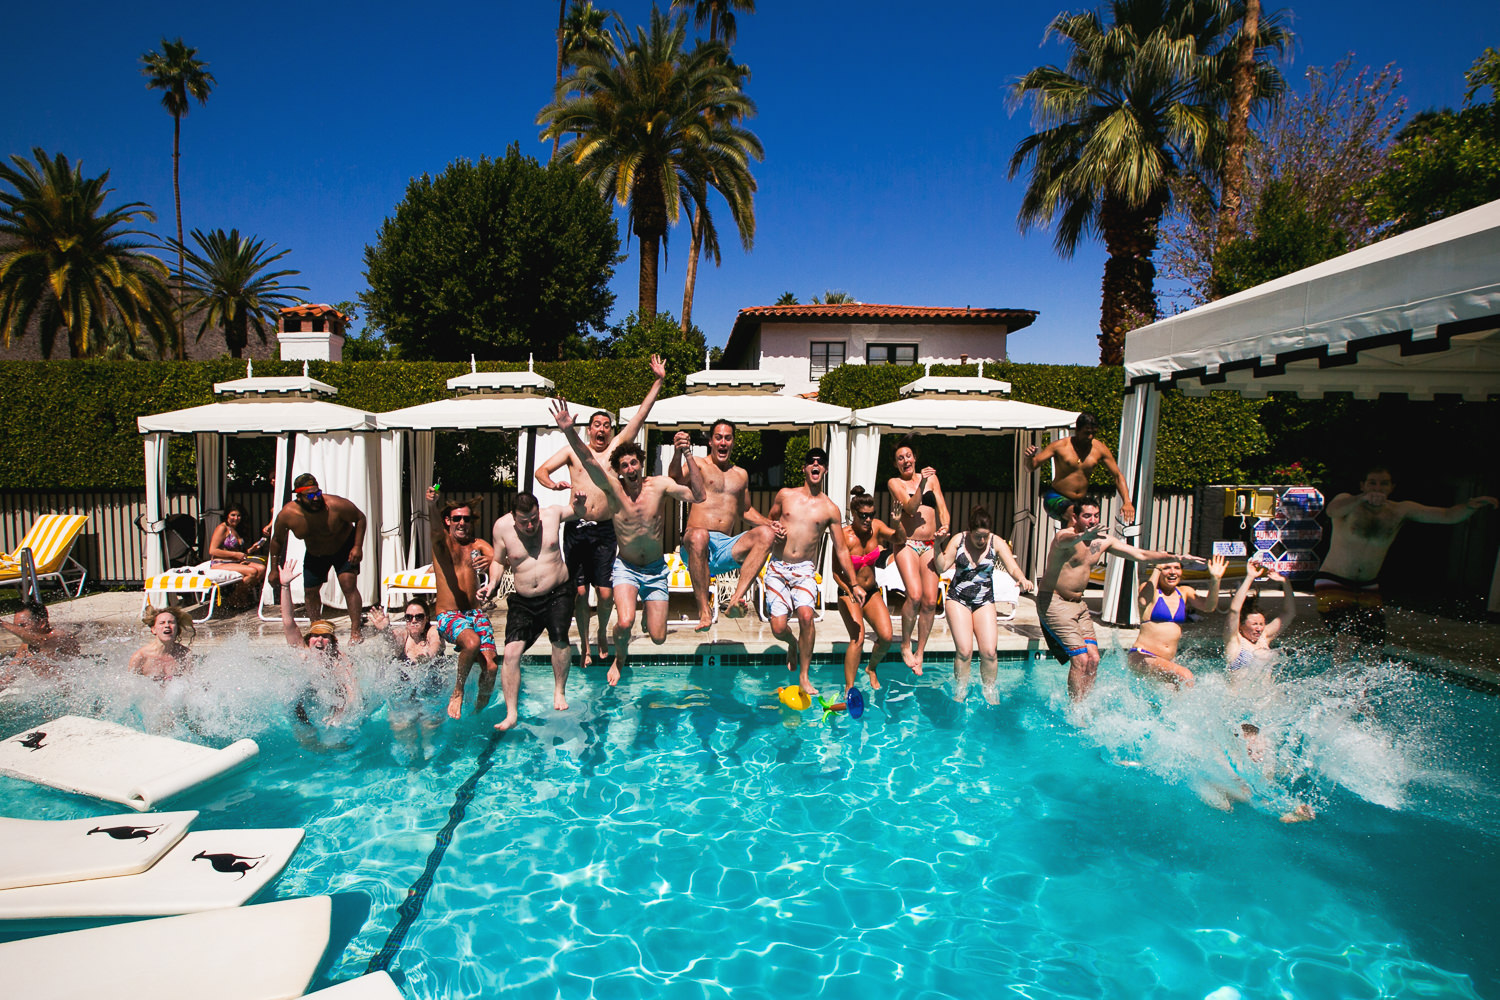 Avalon Palm Springs Photographer - Family and guests jumping into the pool